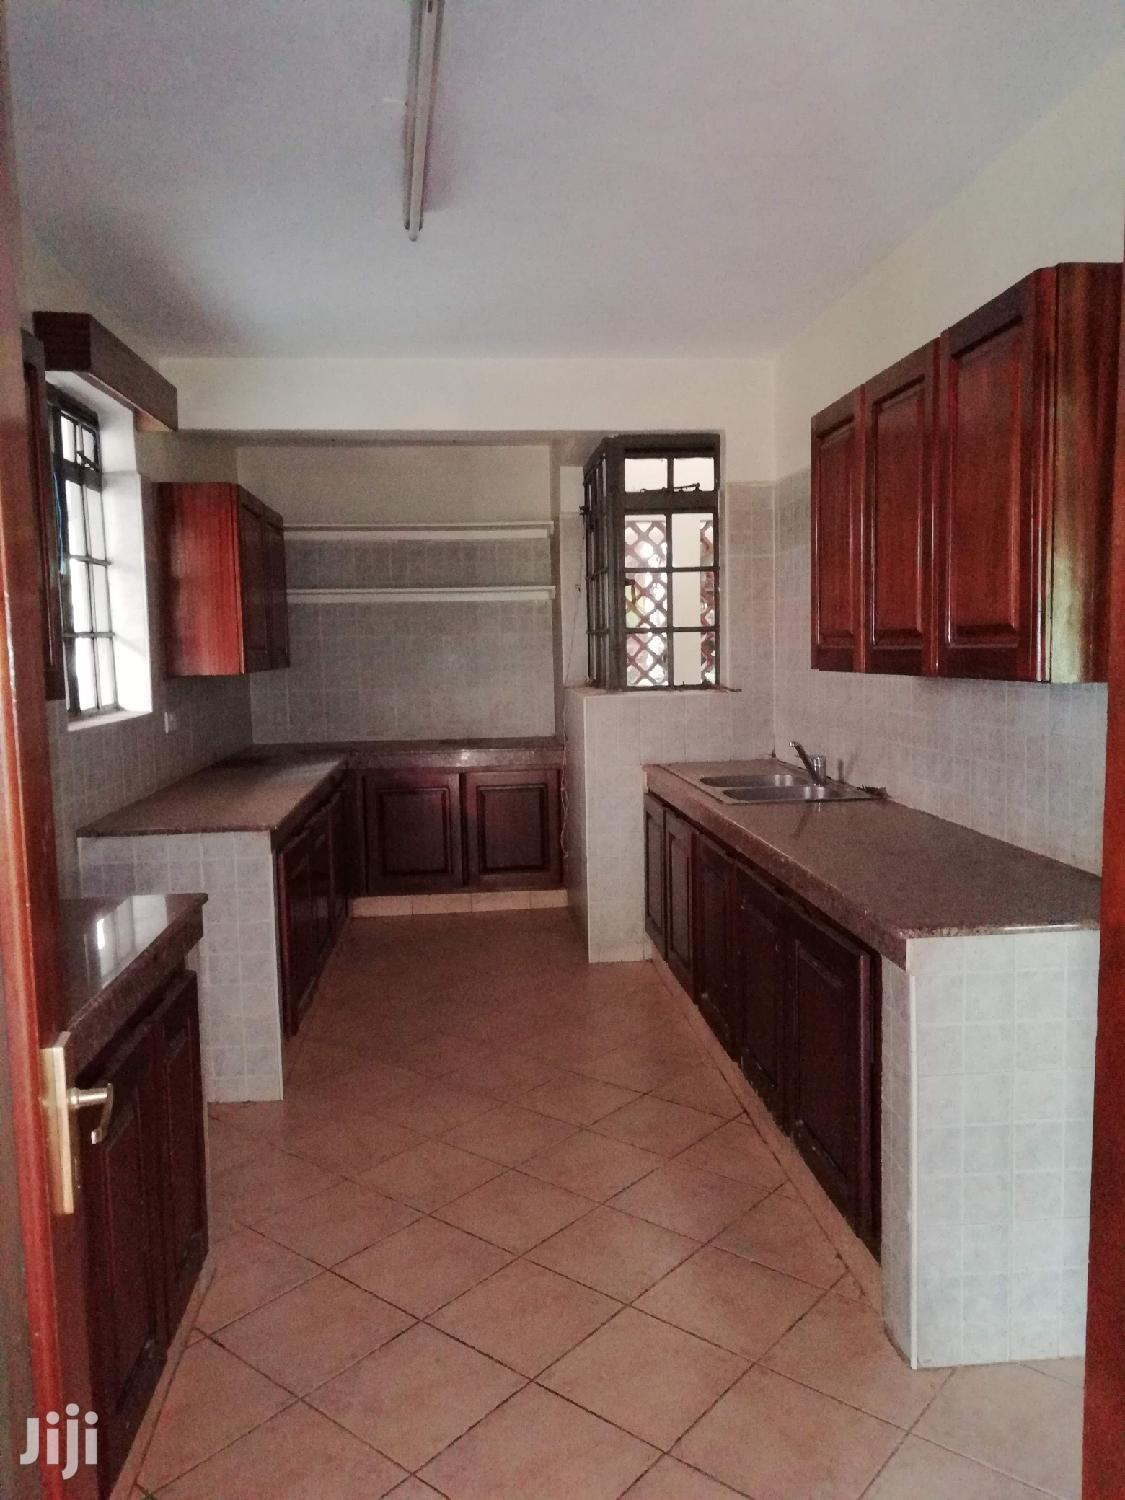 Property World,4brs+Dsq Duplex With Pool,Gym,Lift and Secure